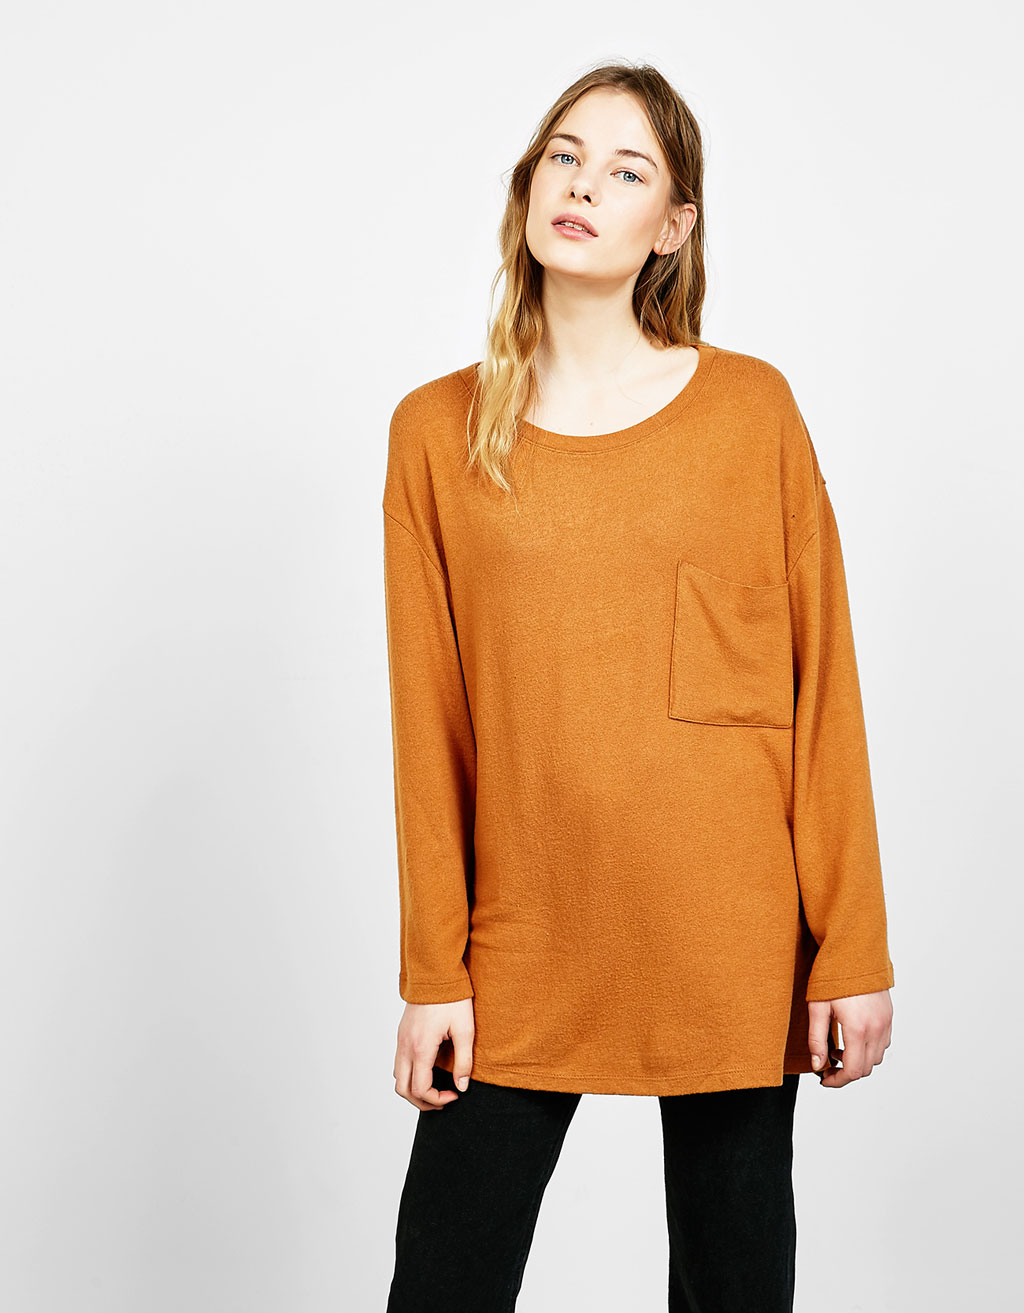 Wide sleeved sweater with pocket